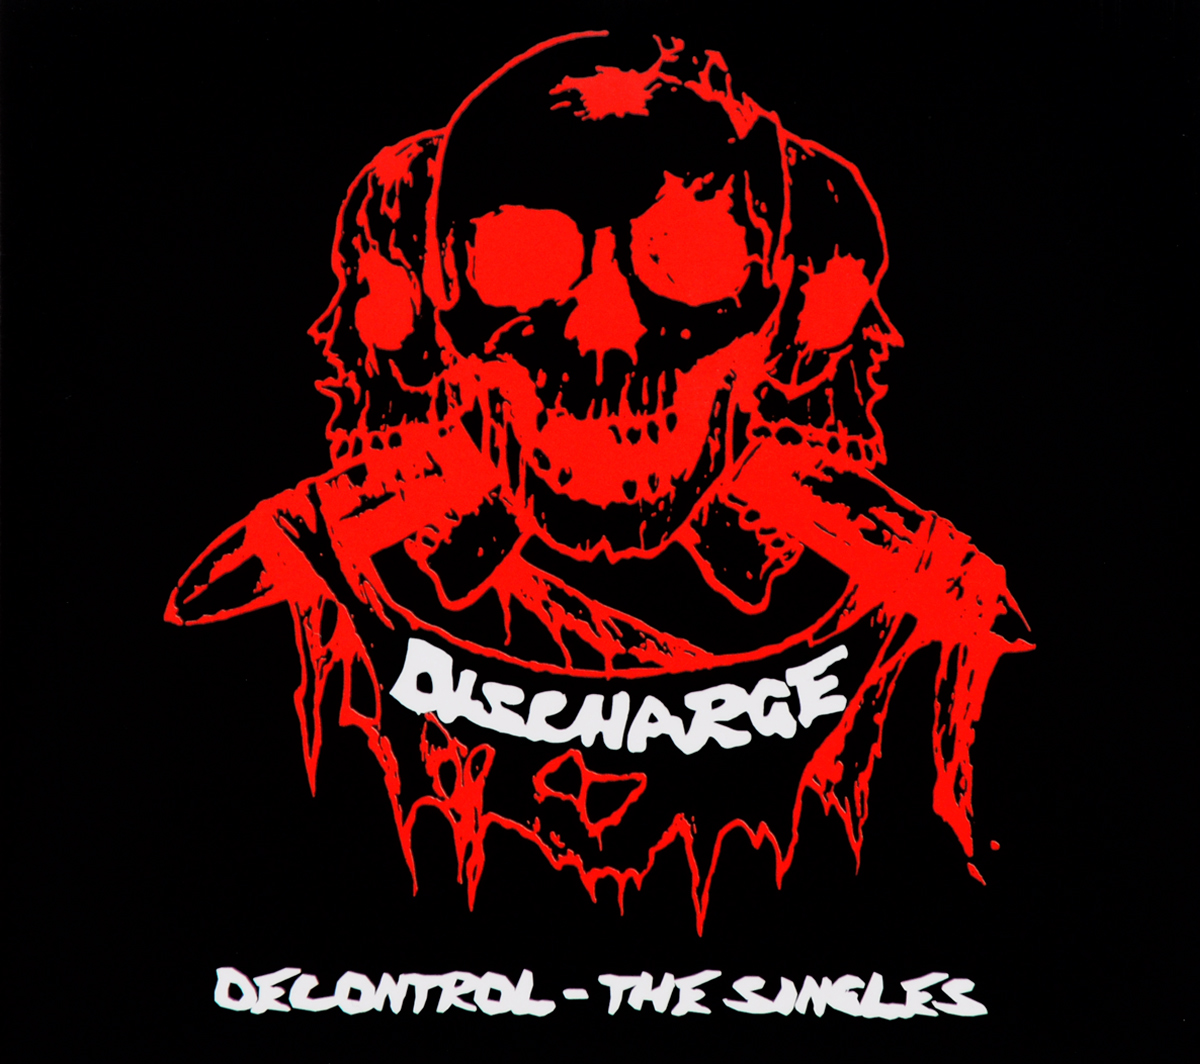 Discharge. Decontrol - The Singles